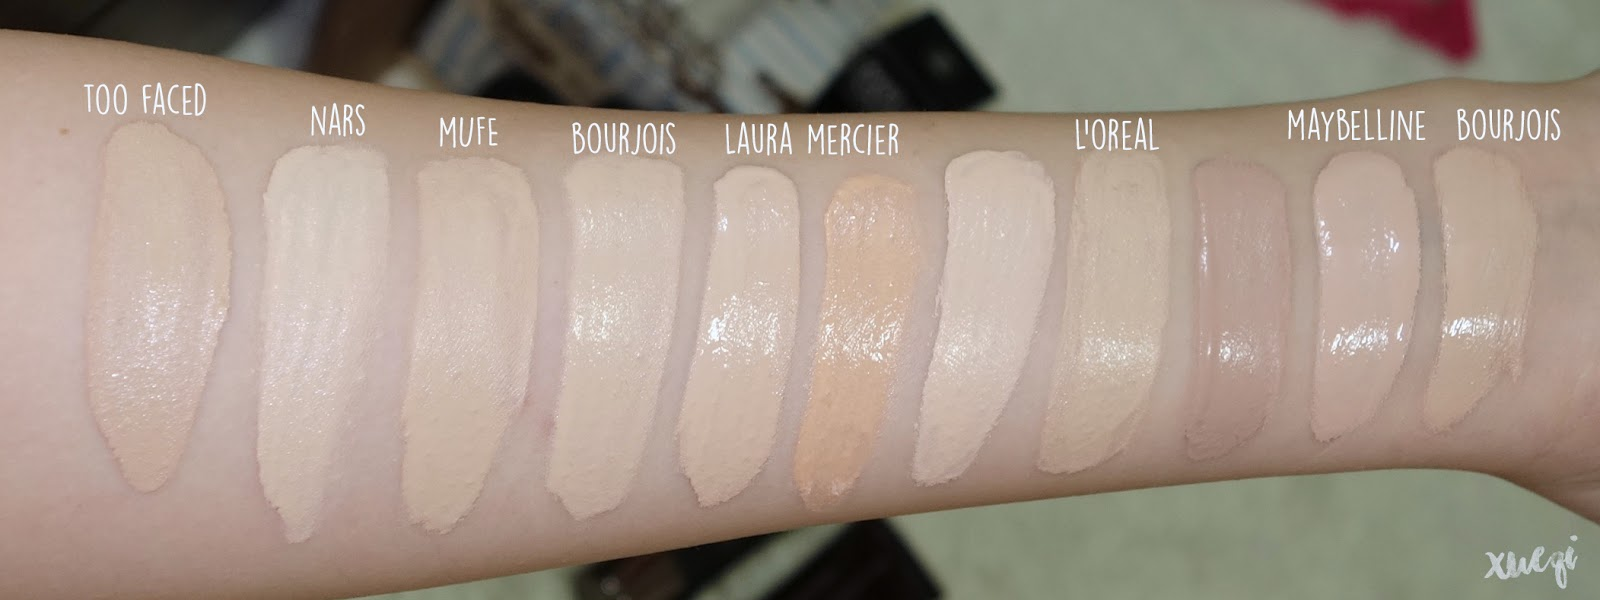 Makeup forever hd powder vs laura mercier